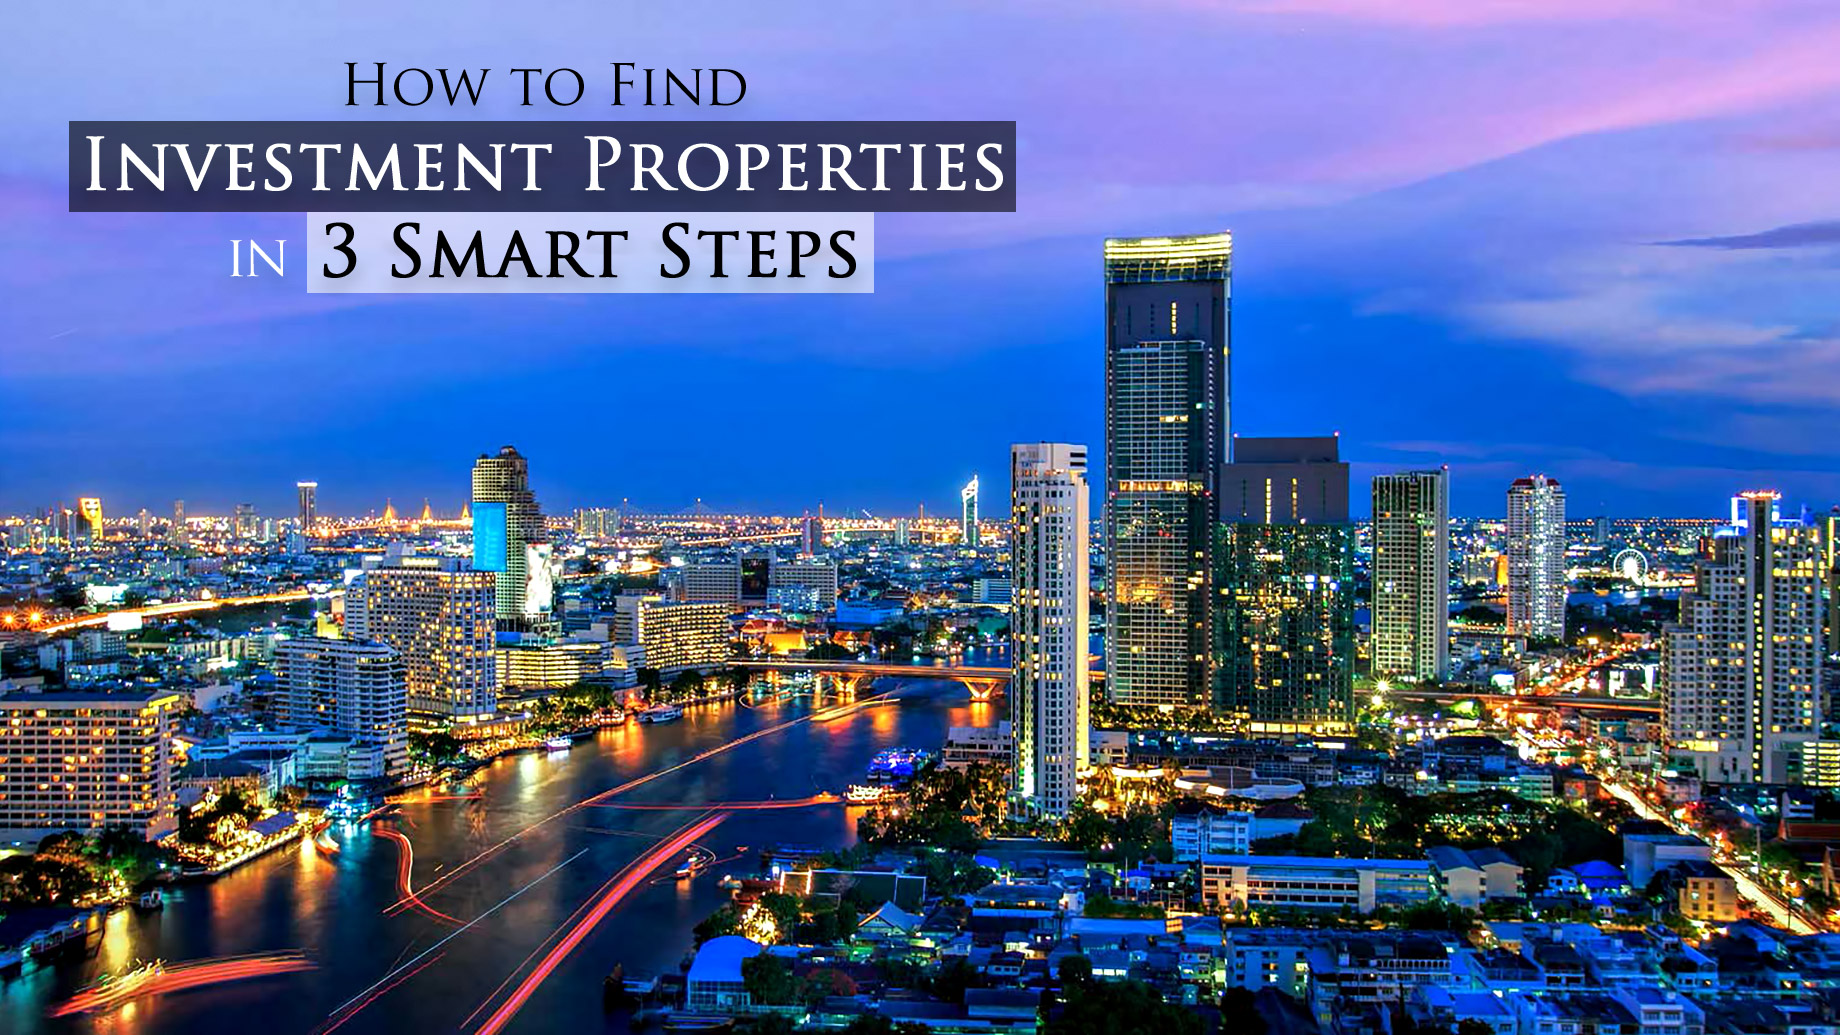 How to Find Investment Properties in 3 Smart Steps